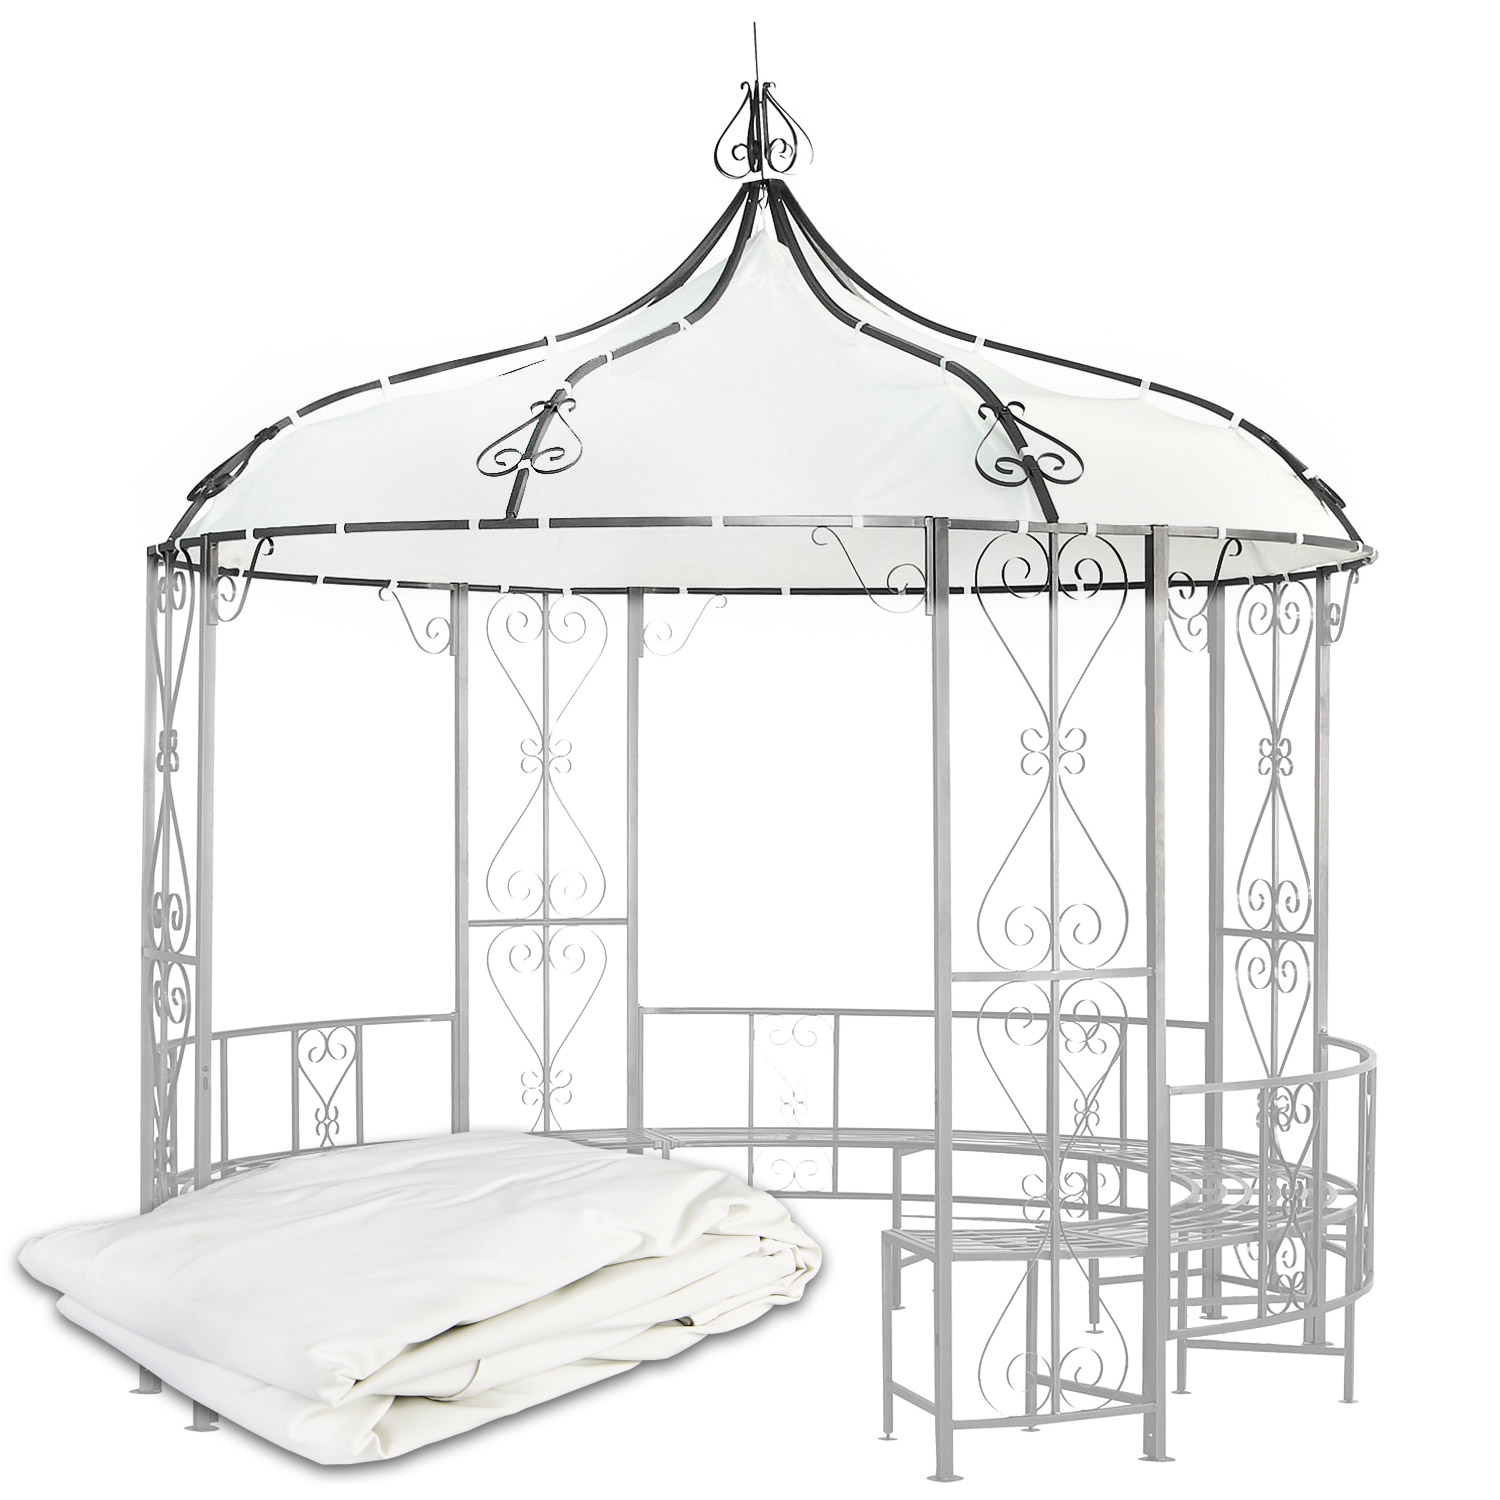 ersatzdach 3 m gazebo pavillon pavillion dach pavilion pavilliondach ebay. Black Bedroom Furniture Sets. Home Design Ideas